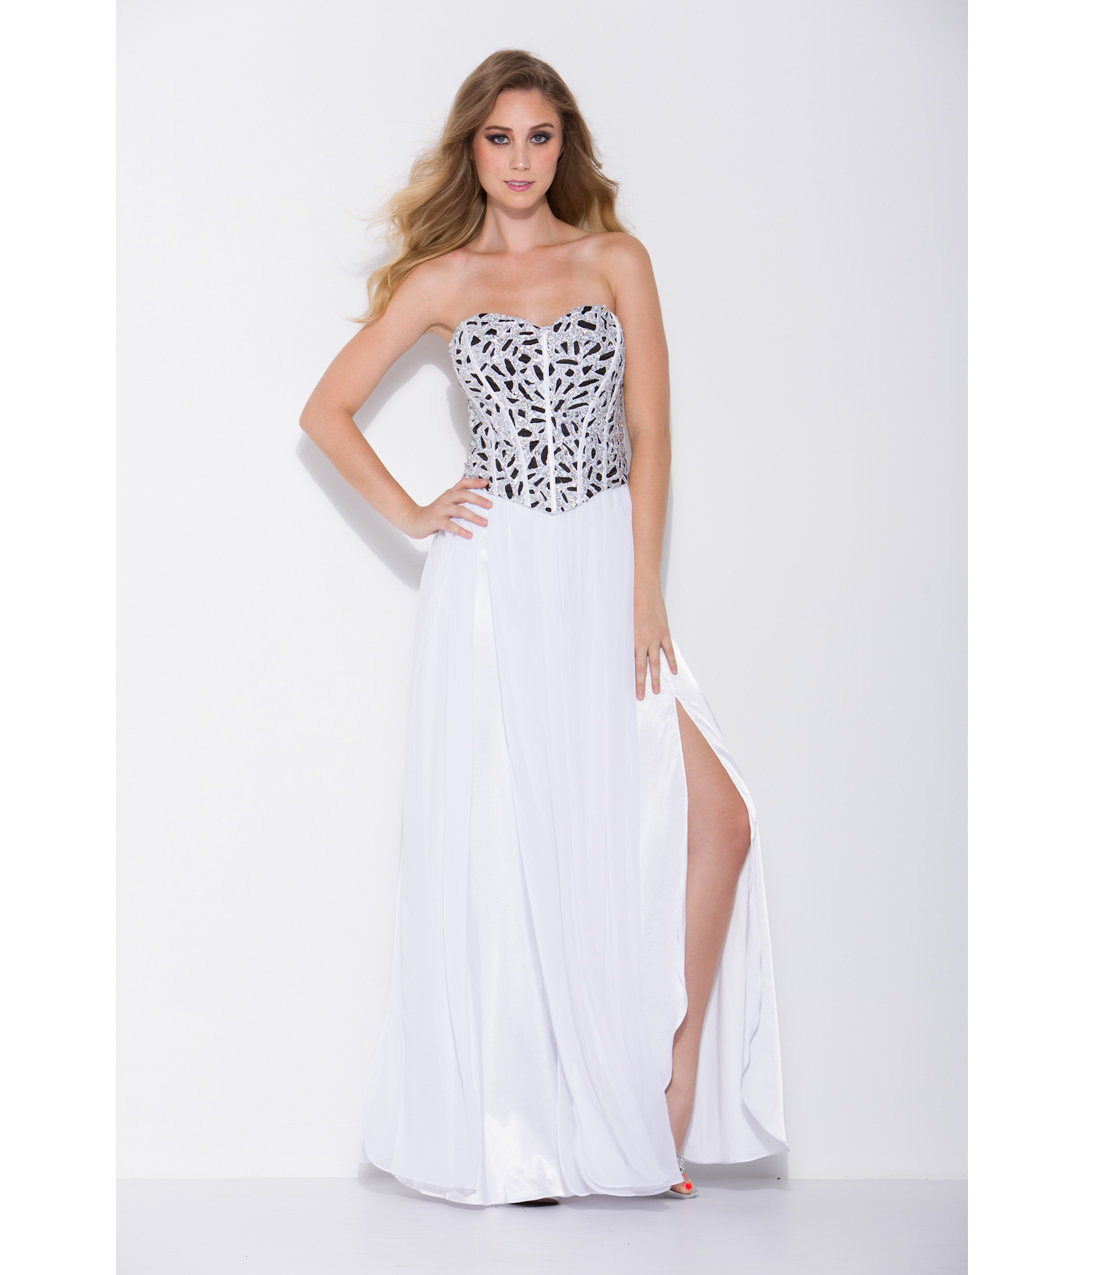 2014 Prom Dresses  White Strapless from Unique Vintage  Formal